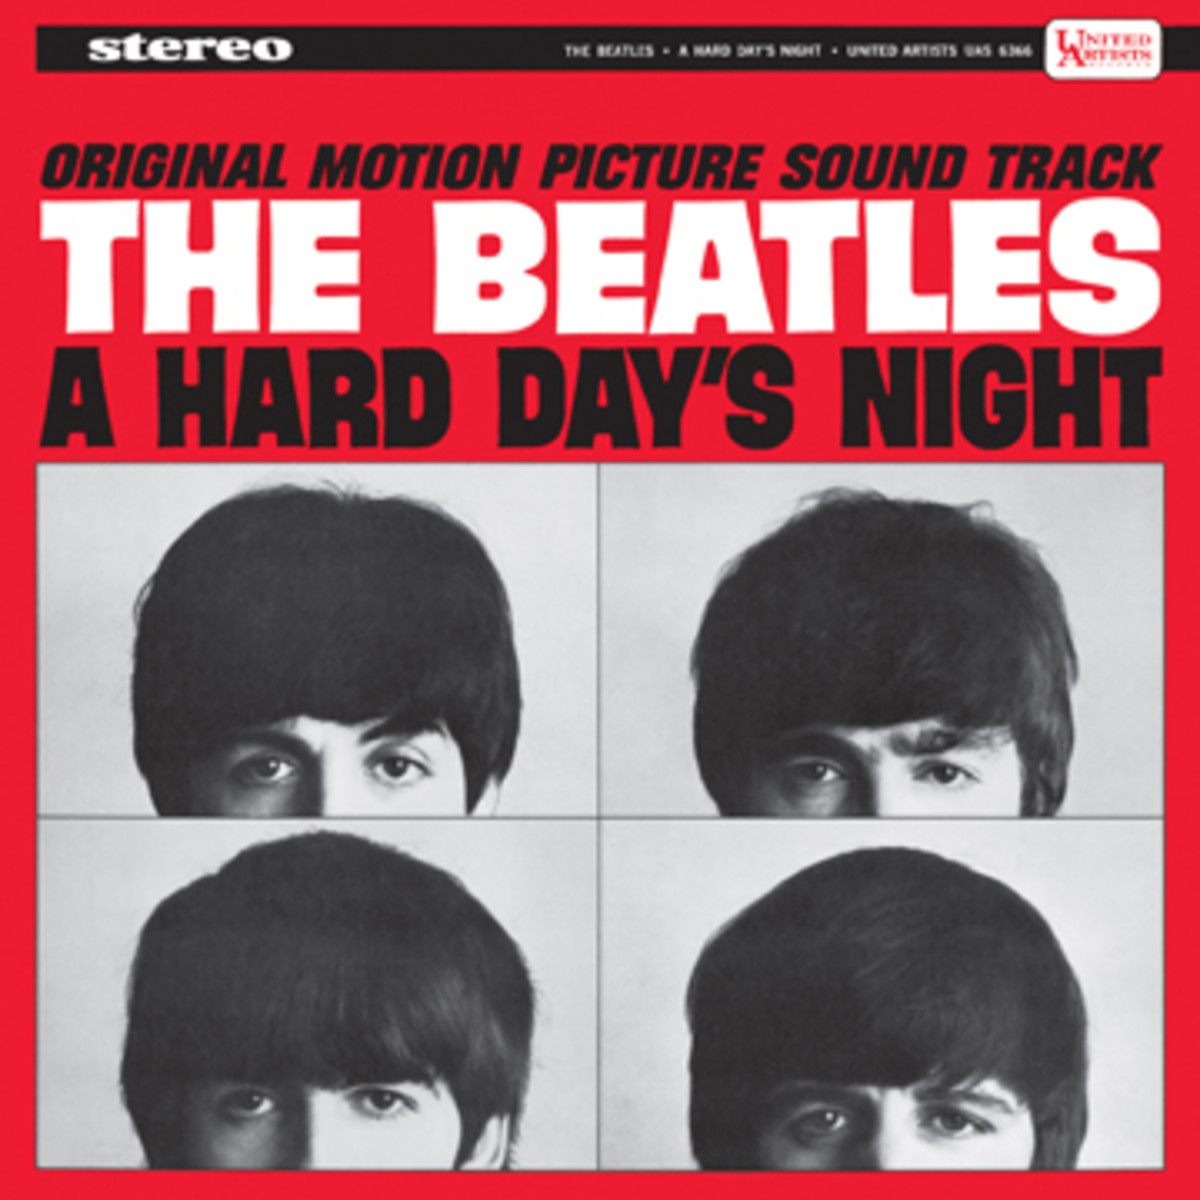 The Beatles A Hard Day's Night soundtrack